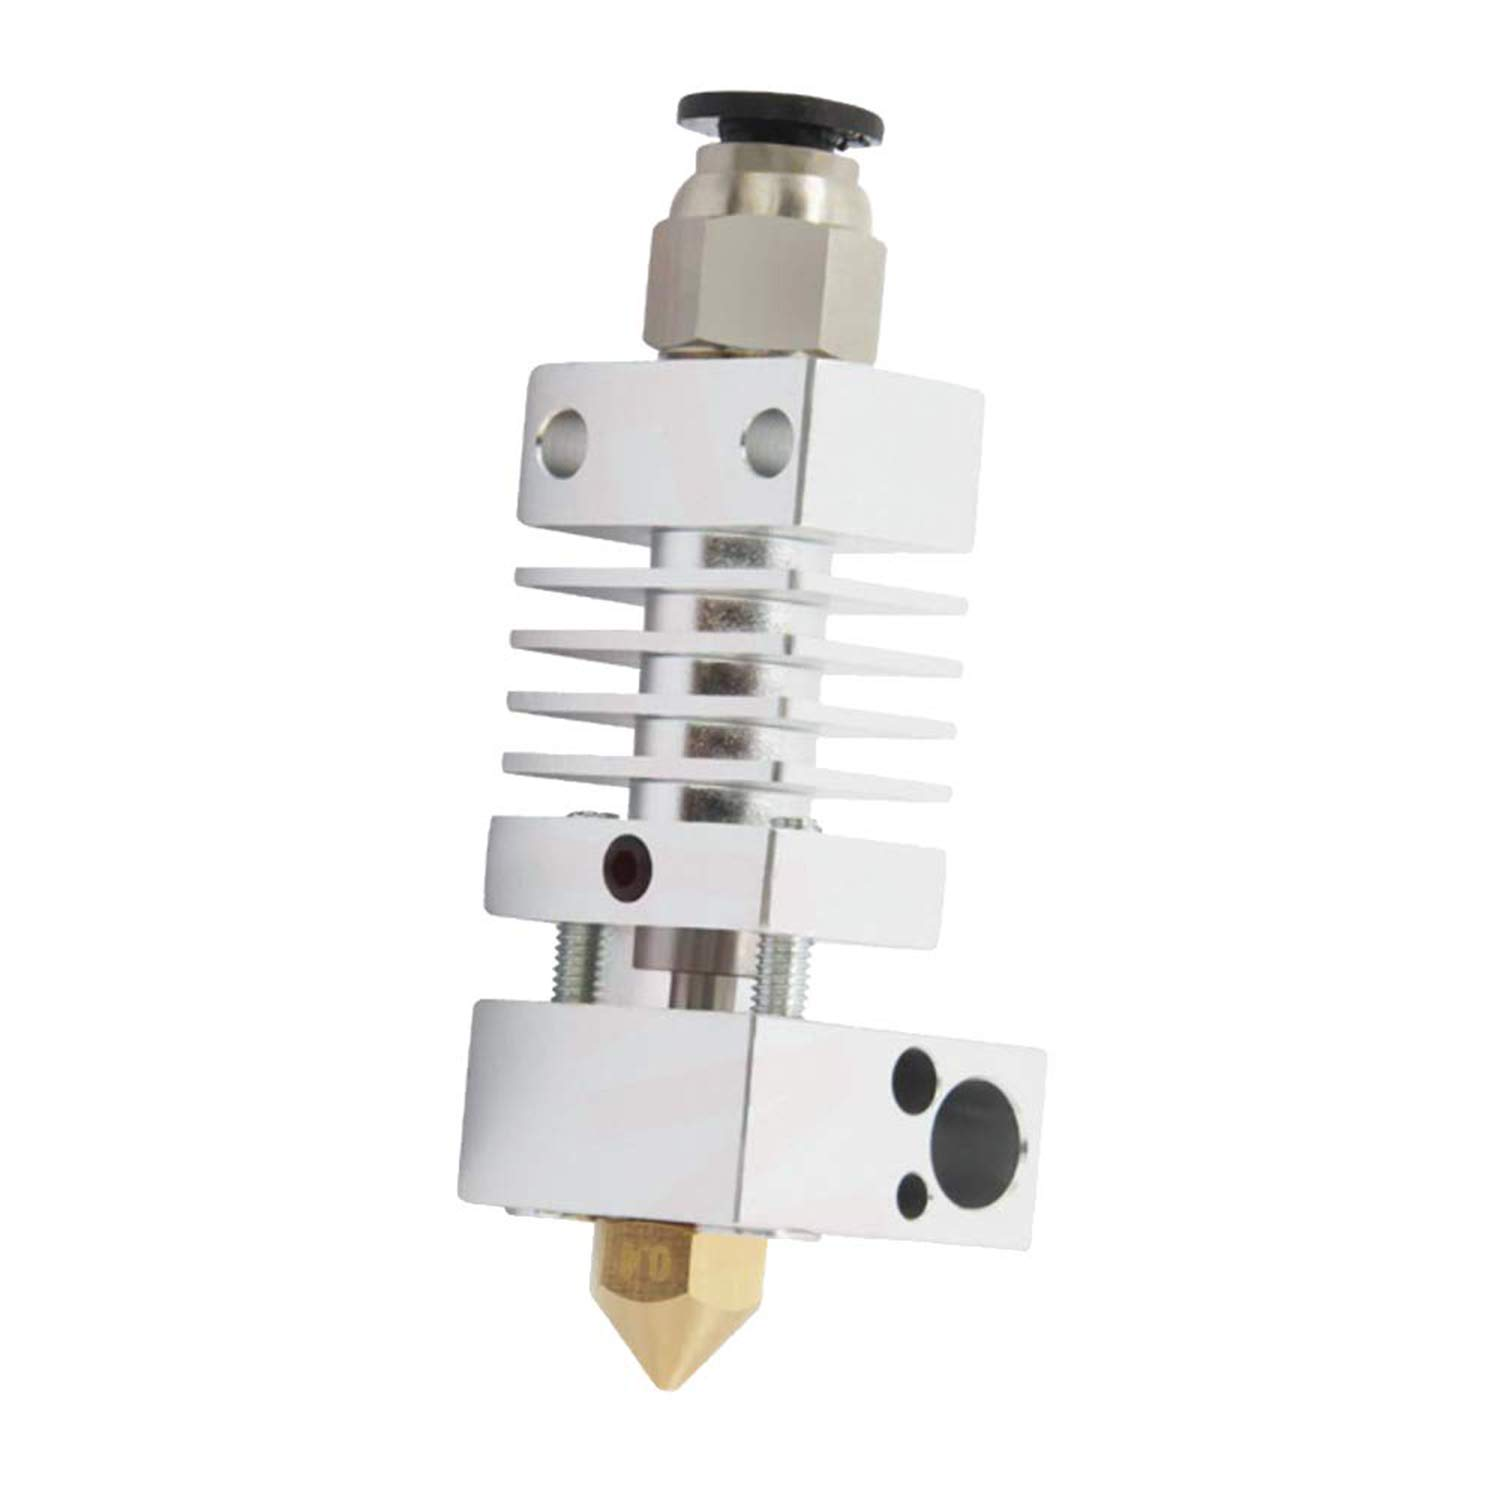 Buperor Hotend 3D Printer Extruder for Creality CR-10 / CR10 / CR10S / Ender 2 / Ender 3 Ender 5 Printers All Metal Block Assembled